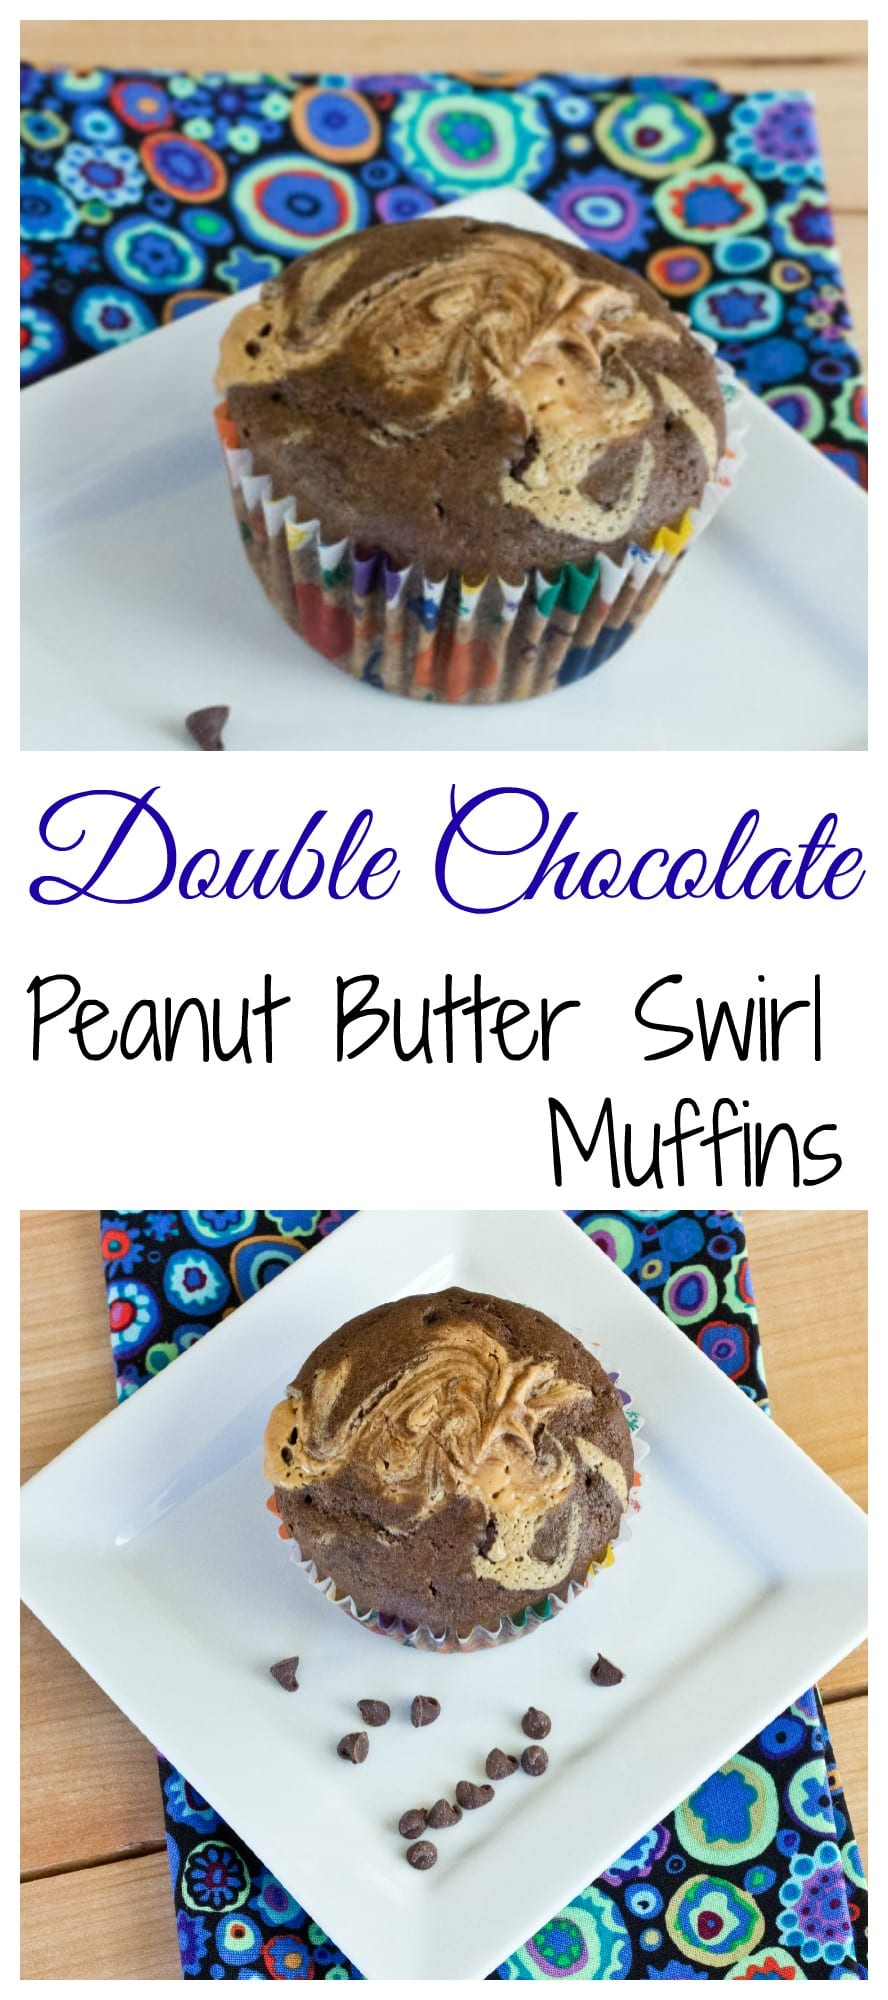 Soft and tender Double Chocolate Muffins, with a swirl of peanut butter on top!